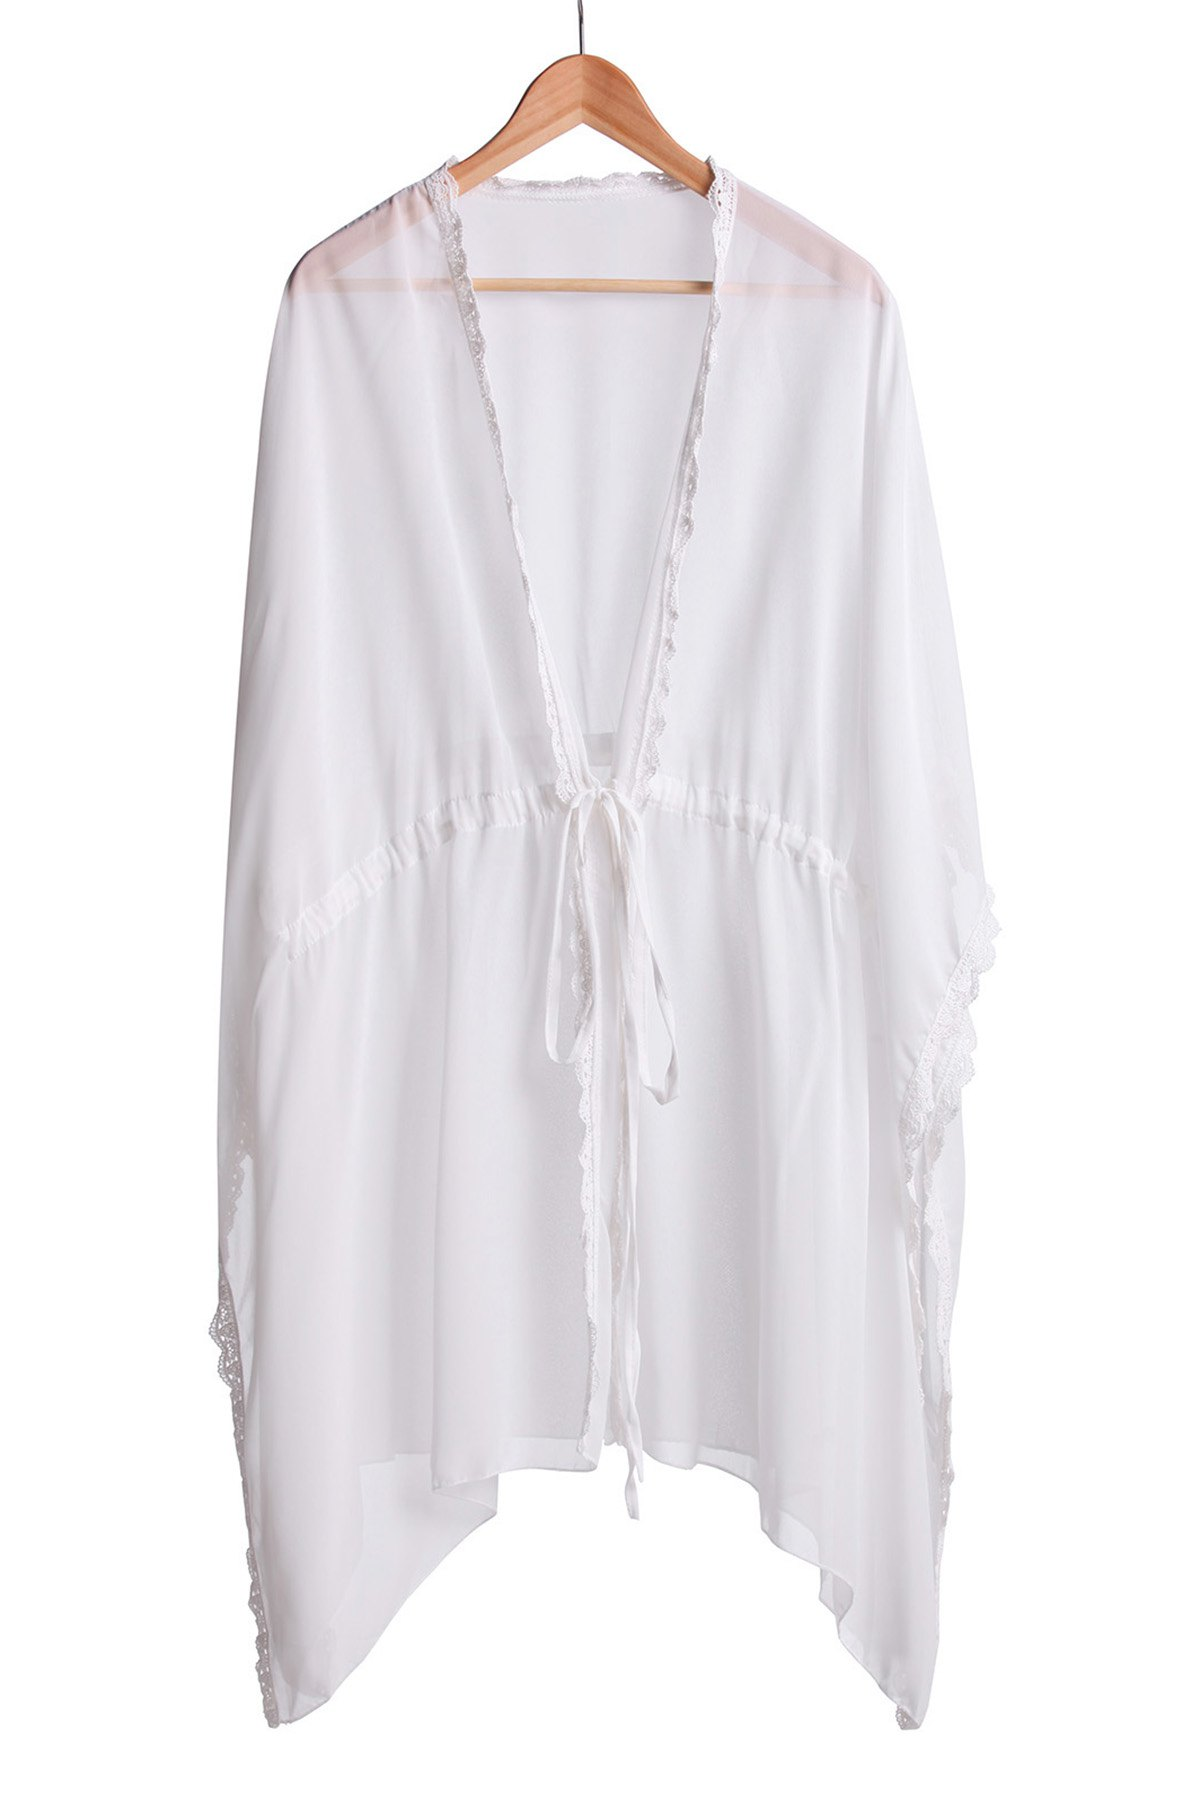 Sexy Lacework Splicing See-Through 3/4 Sleeve Women's Cover-Up - WHITE ONE SIZE(FIT SIZE XS TO M)